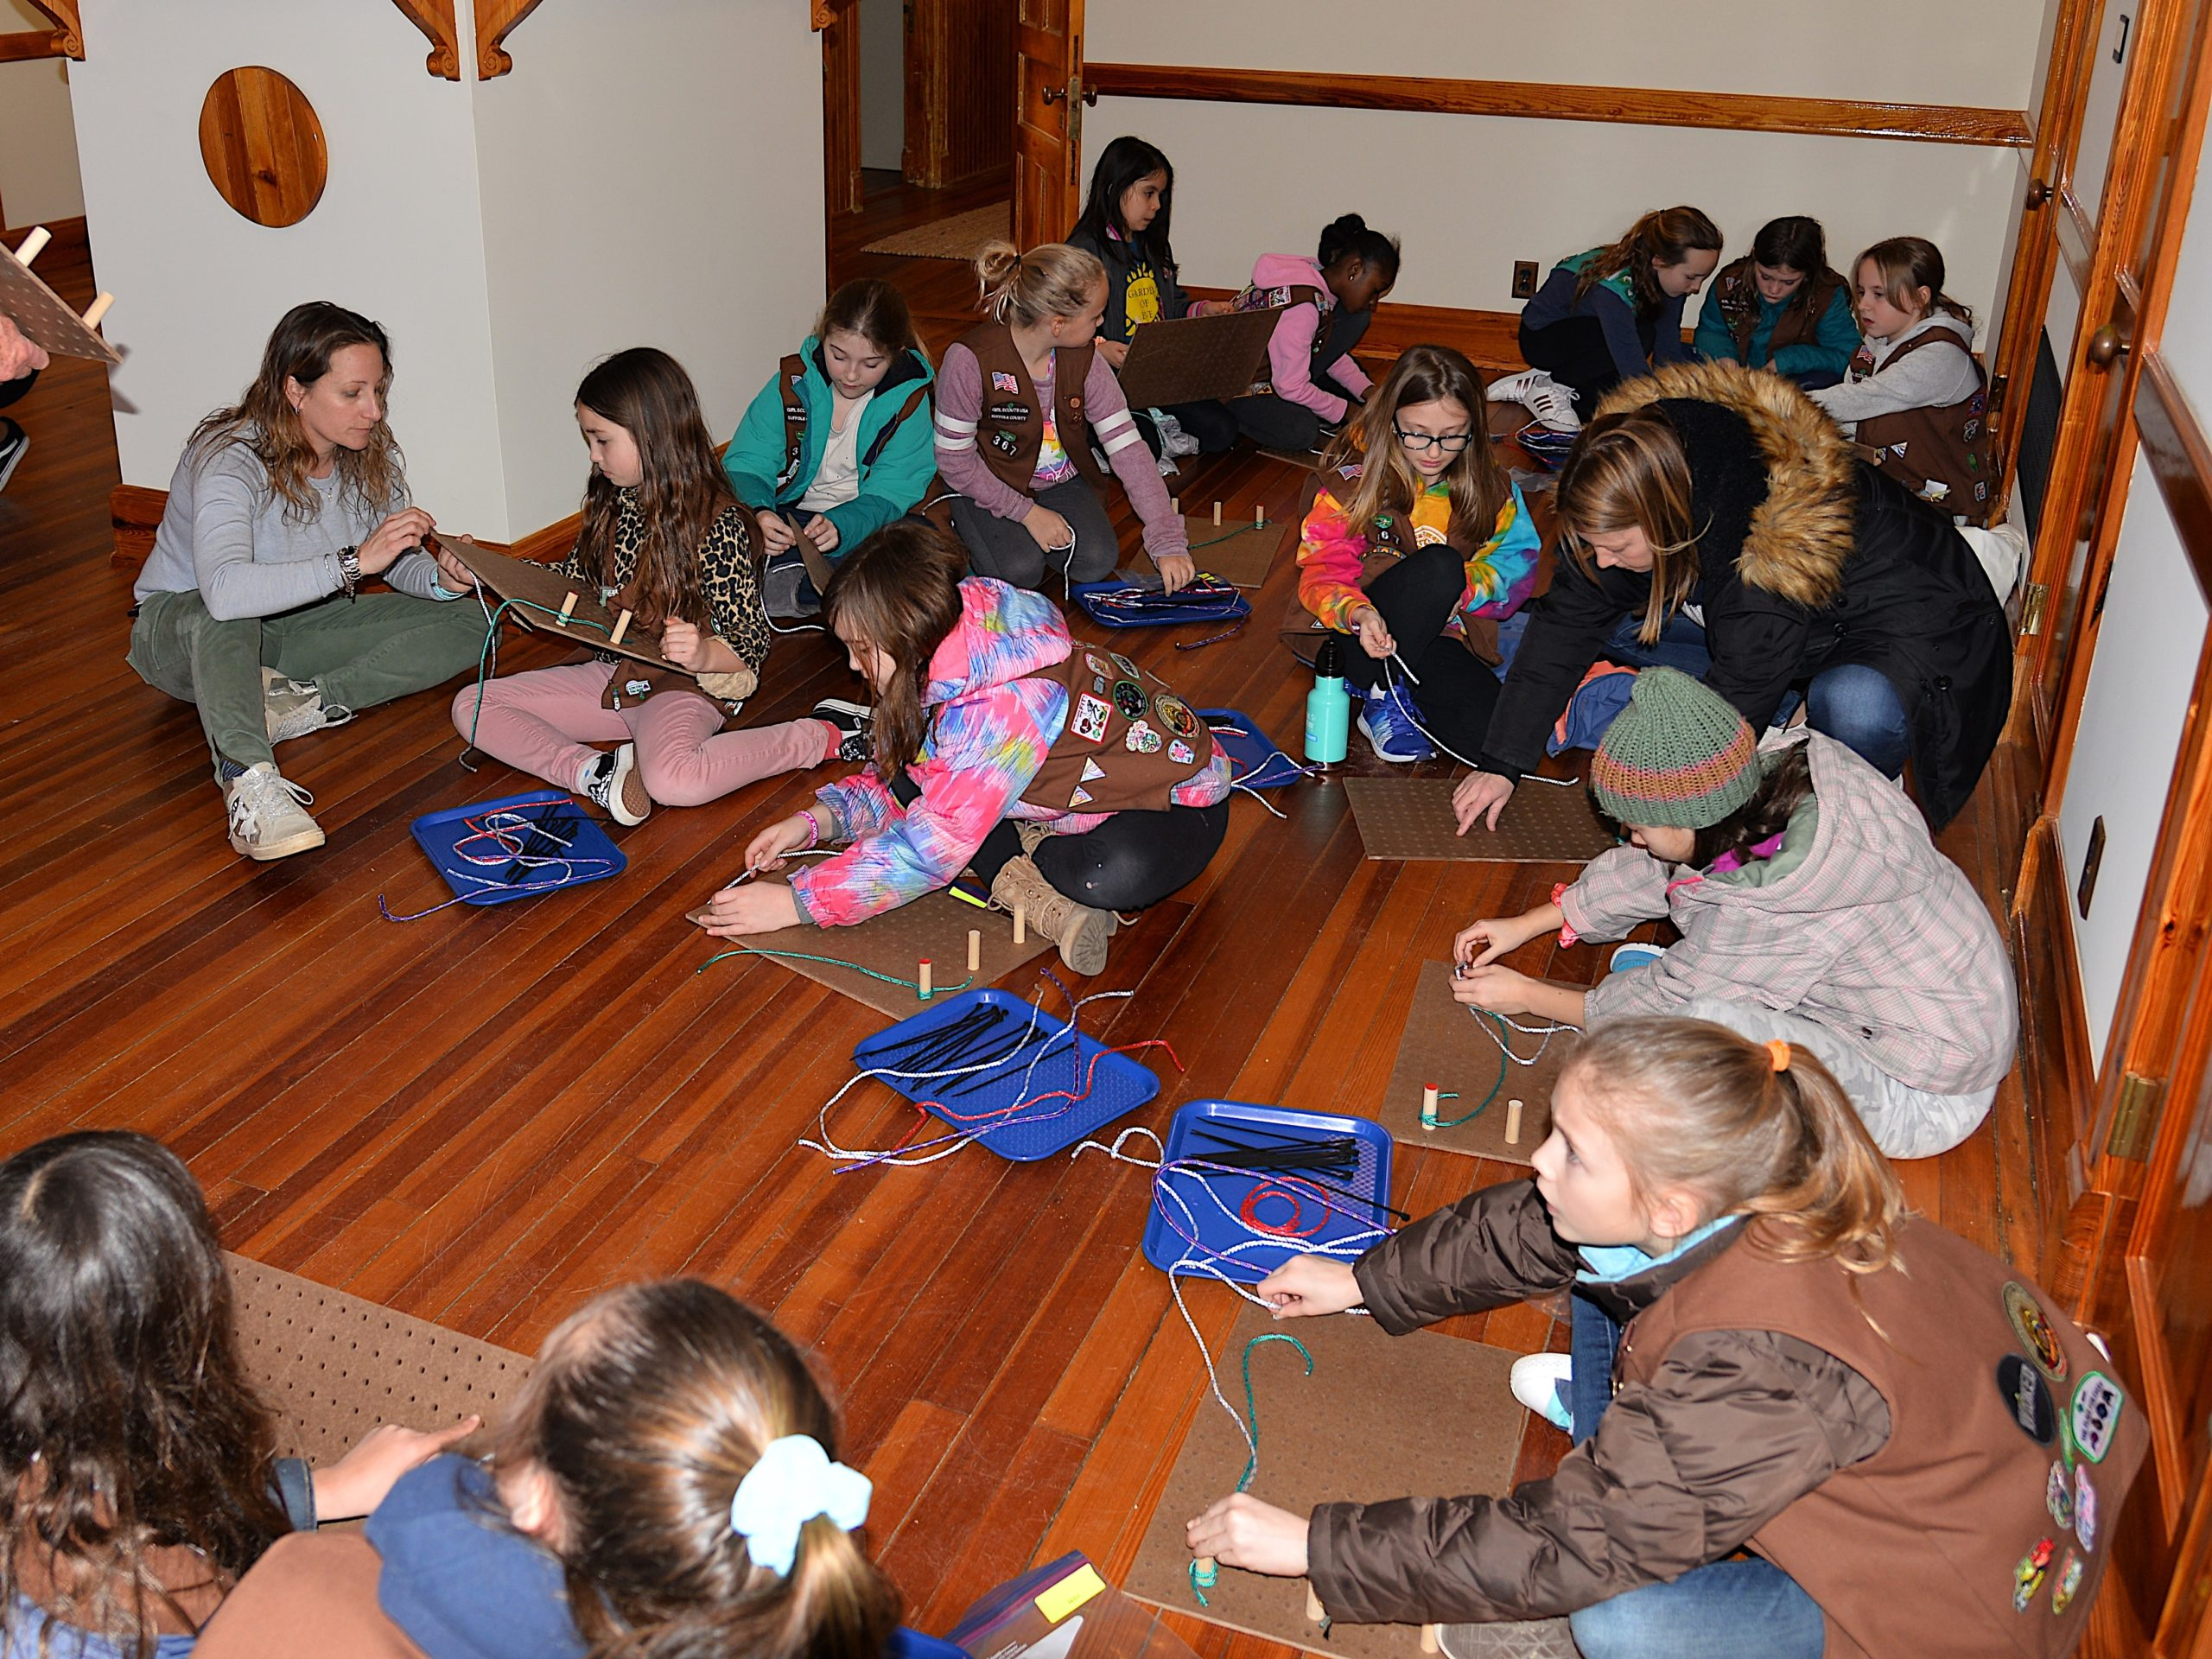 Girl Scouts learned how to tie knots on Friday at the Amagansett Lifesaving Station, with instructors Britton Bistrian and Stewart Close.